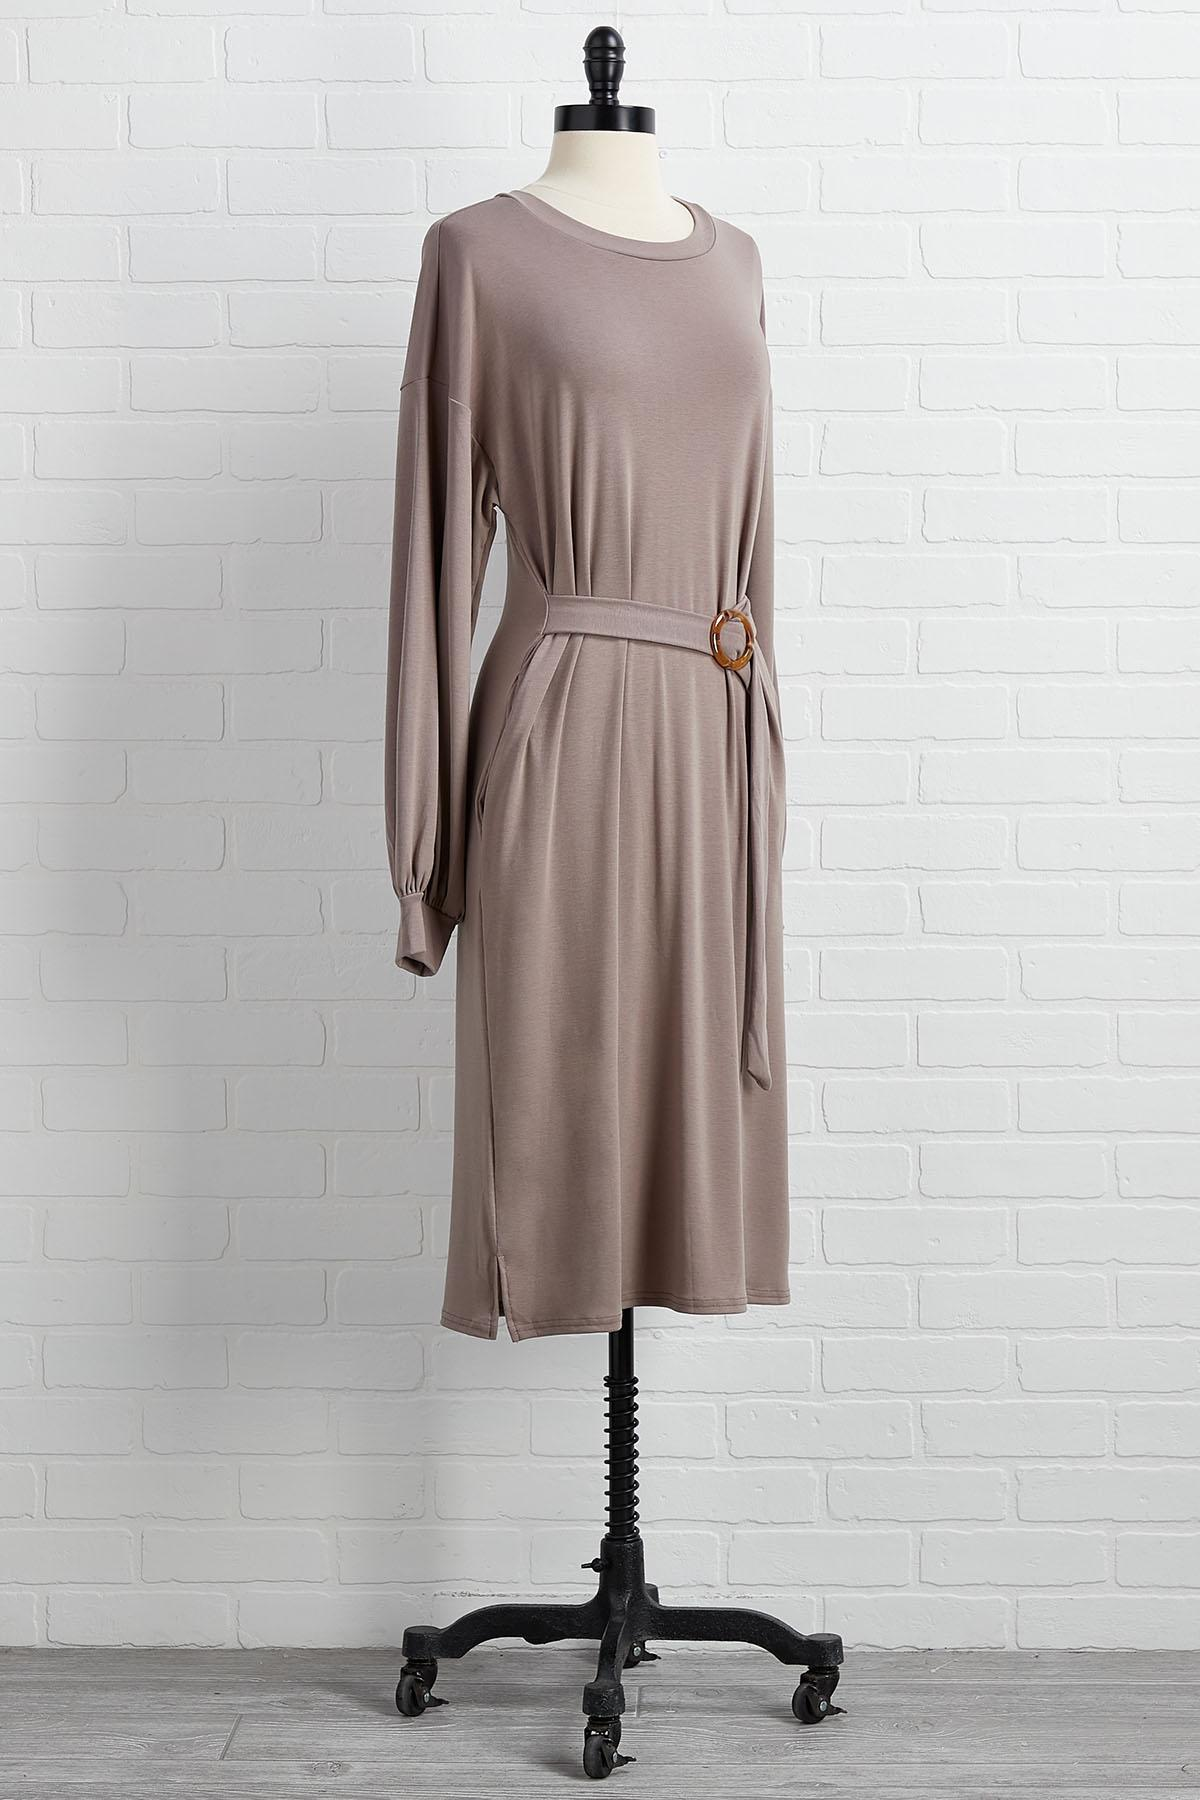 Buckle Your Seat Belted Dress